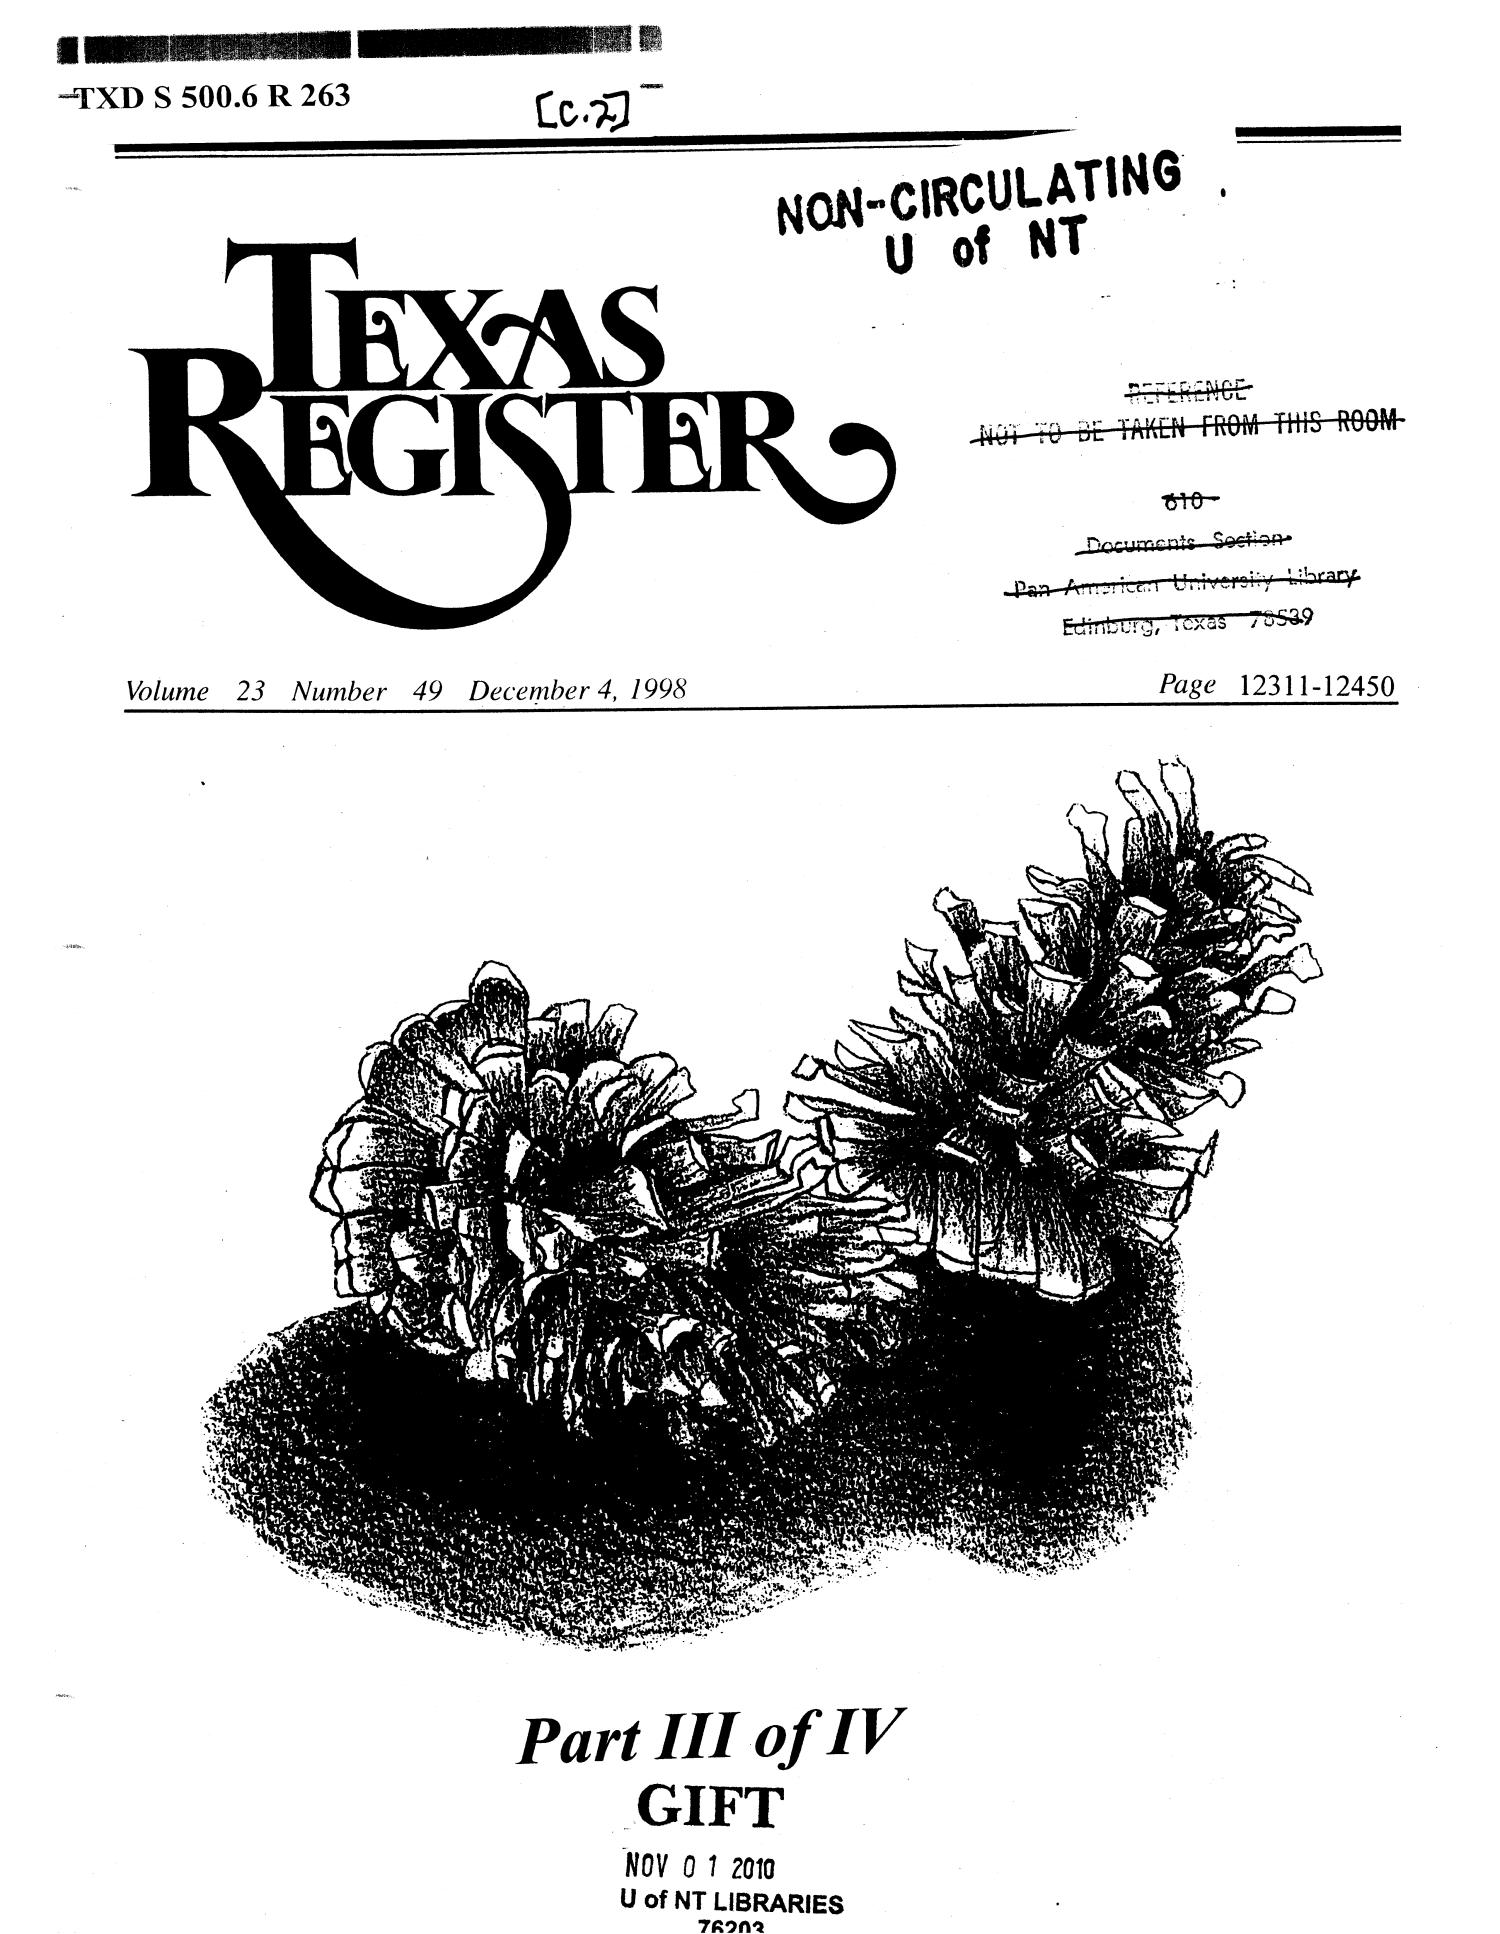 Texas Register, Volume 23, Number 49, Part III, Pages 12311-12450, December 4, 1998                                                                                                      Title Page